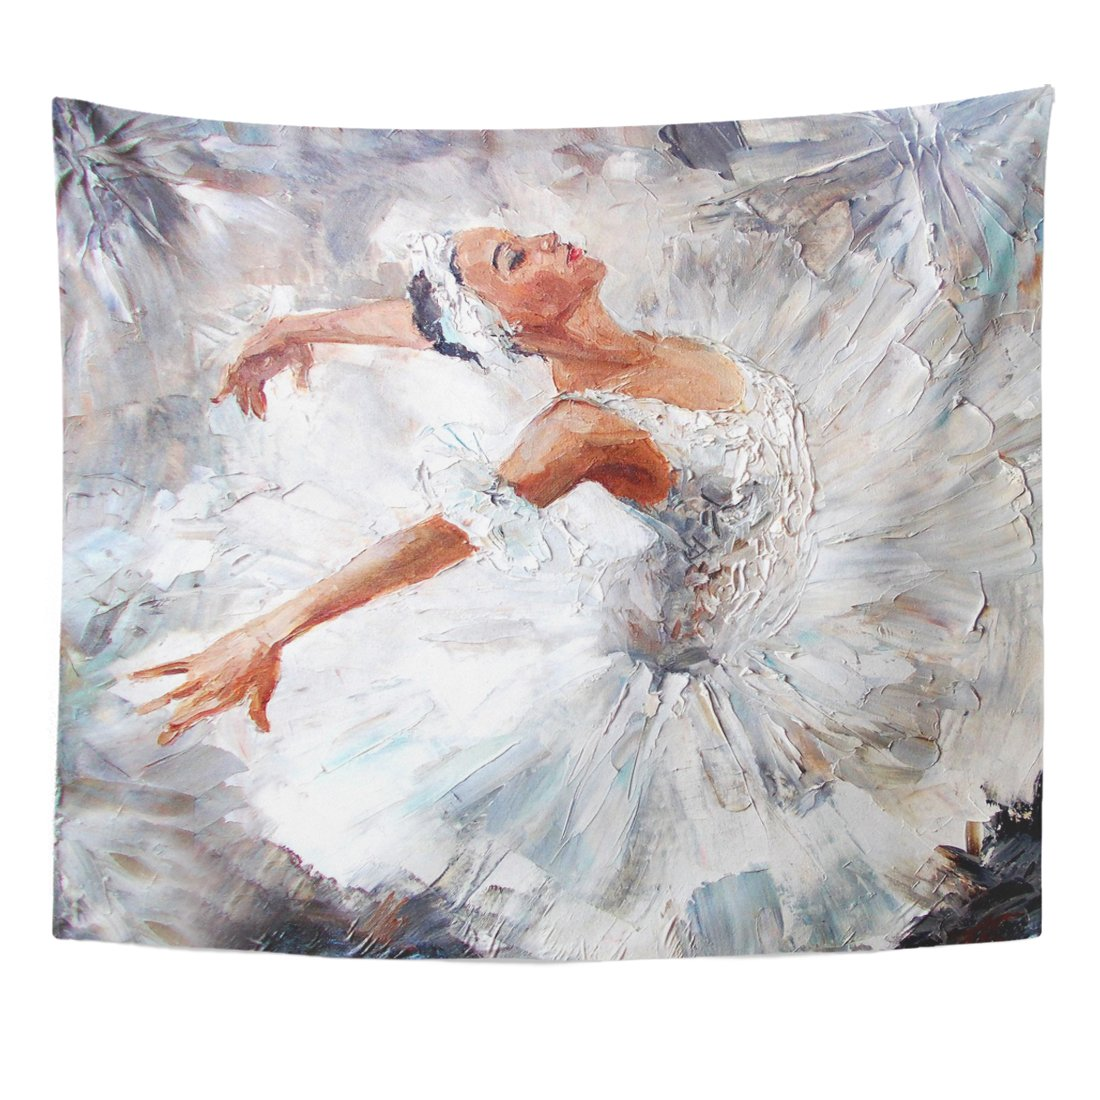 TOMPOP Tapestry Gray Ballet Oil Painting Girl Ballerina Drawn Cute Dancing Home Decor Wall Hanging for Living Room Bedroom Dorm 50x60 Inches